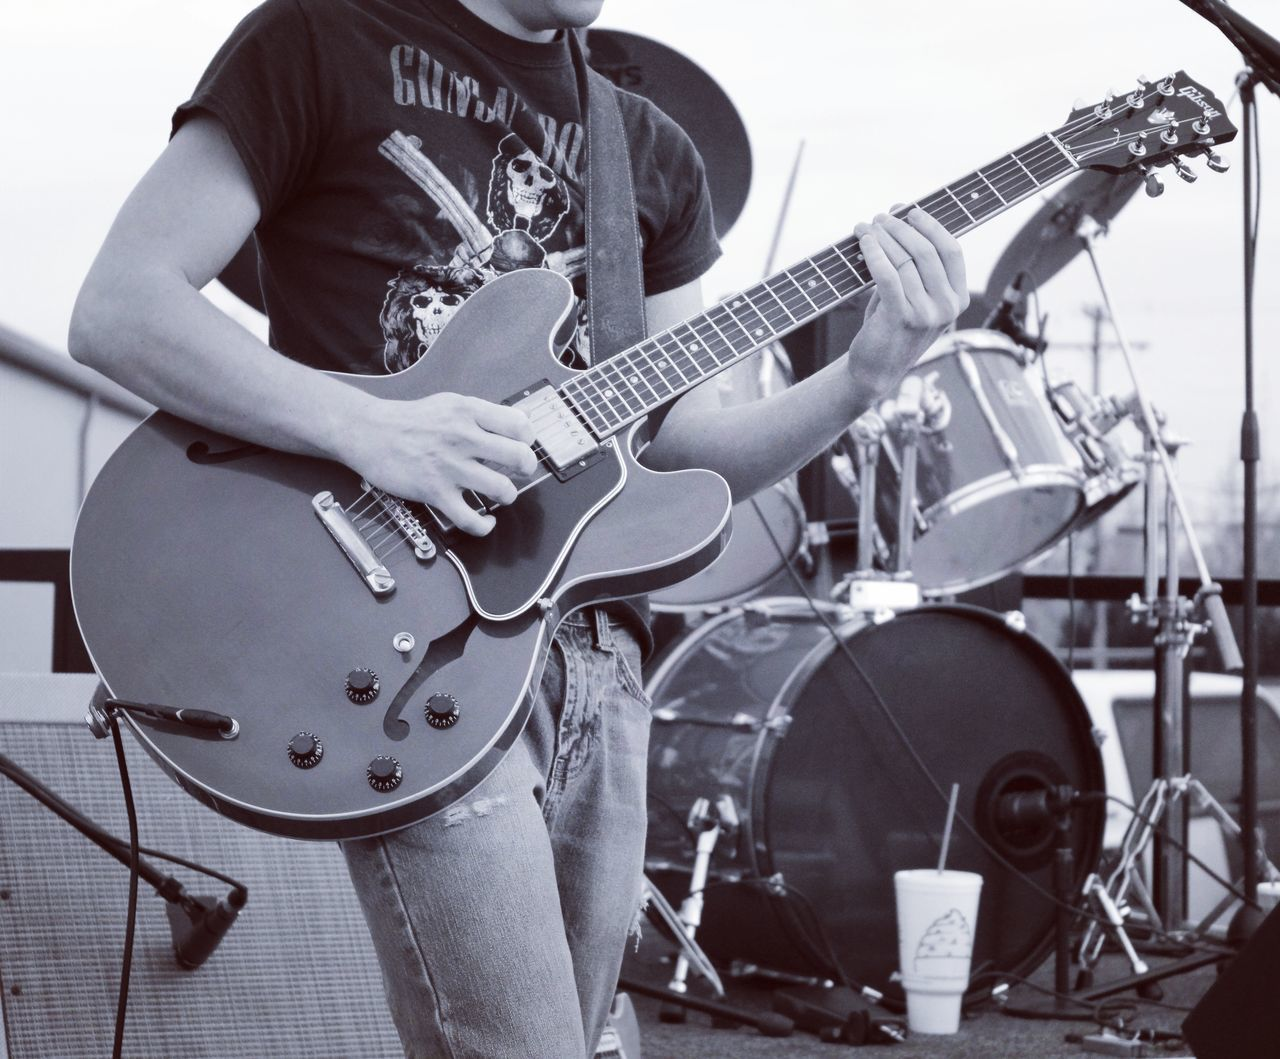 Music Arts Culture And Entertainment Plucking An Instrument Electric Guitar One Person Performance Adults Only Playing Guitarist Musician Guitar Skill  One Man Only Rock Music Musical Instrument Performing Arts Event Adult Men Electric Guitars Plugged In Rocknroll